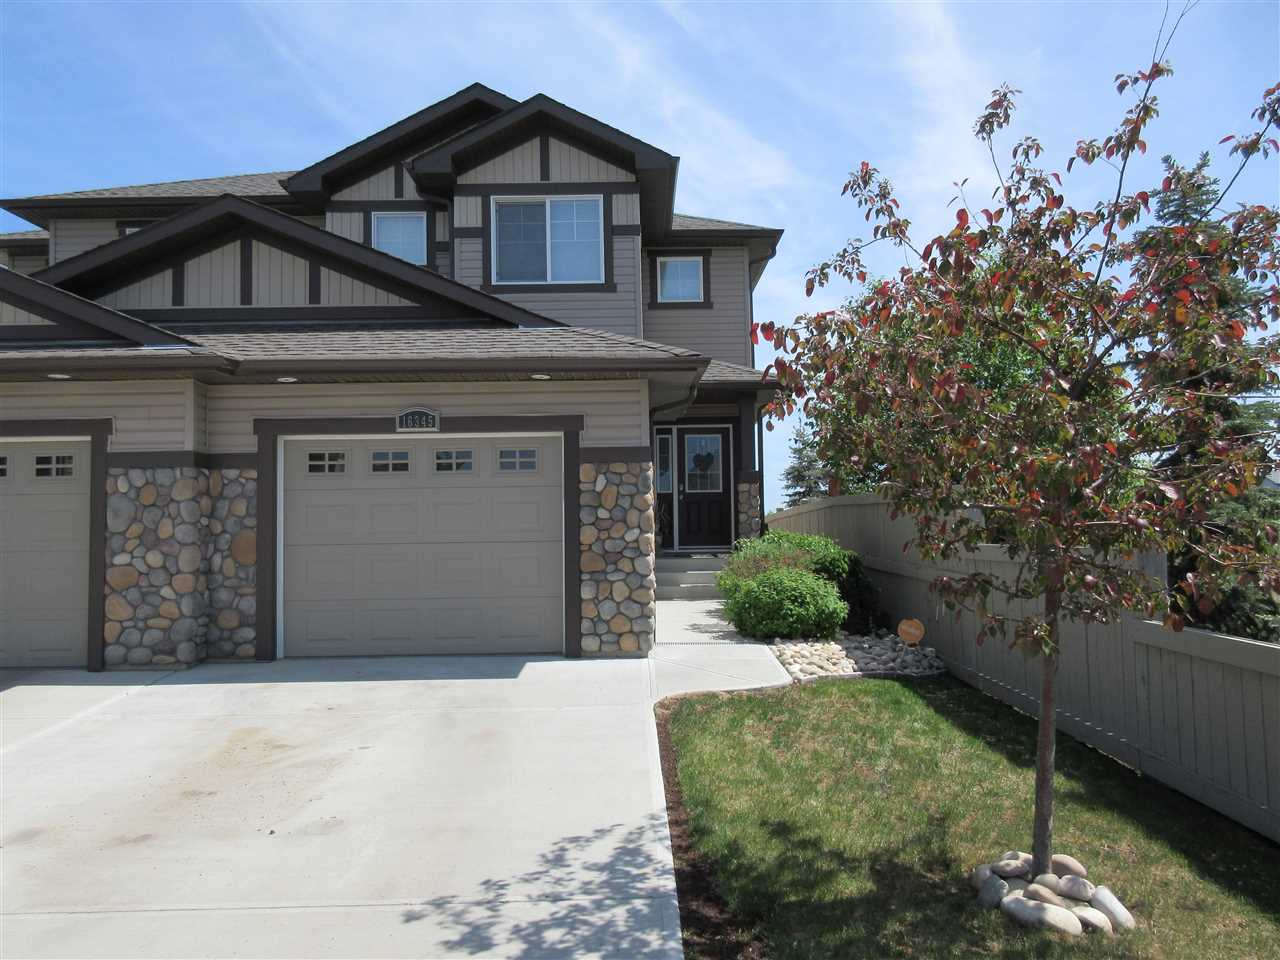 16345 134 Street, 3 bed, 4 bath, at $374,900